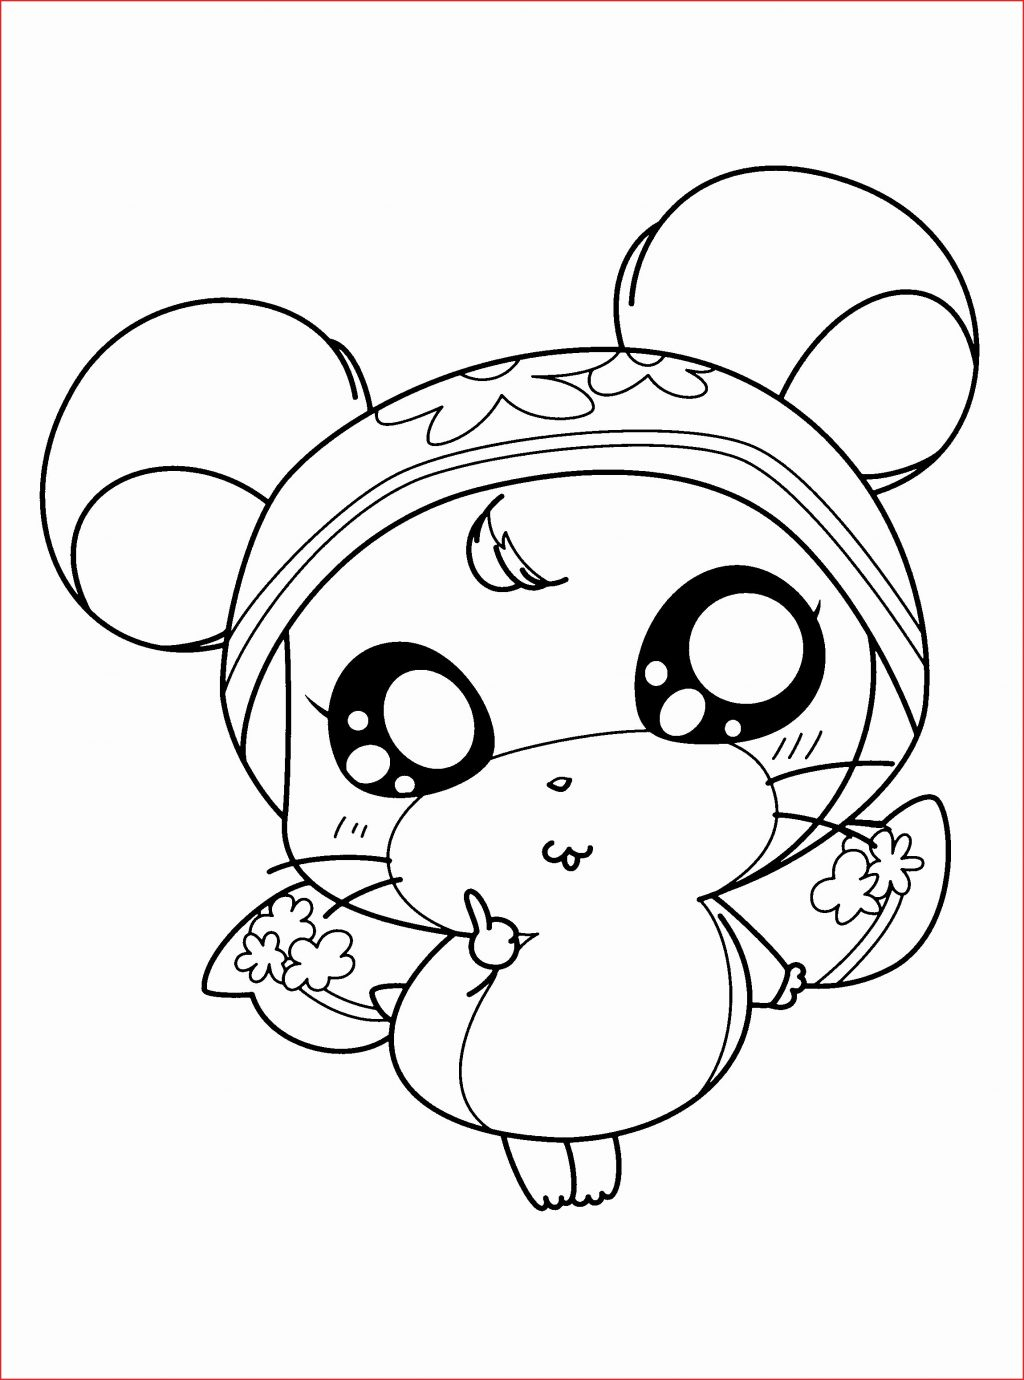 Halloween Frankenstein Coloring Pages Halloween Halloween 2018 Coloring Pages Drawings Of Cats Unique